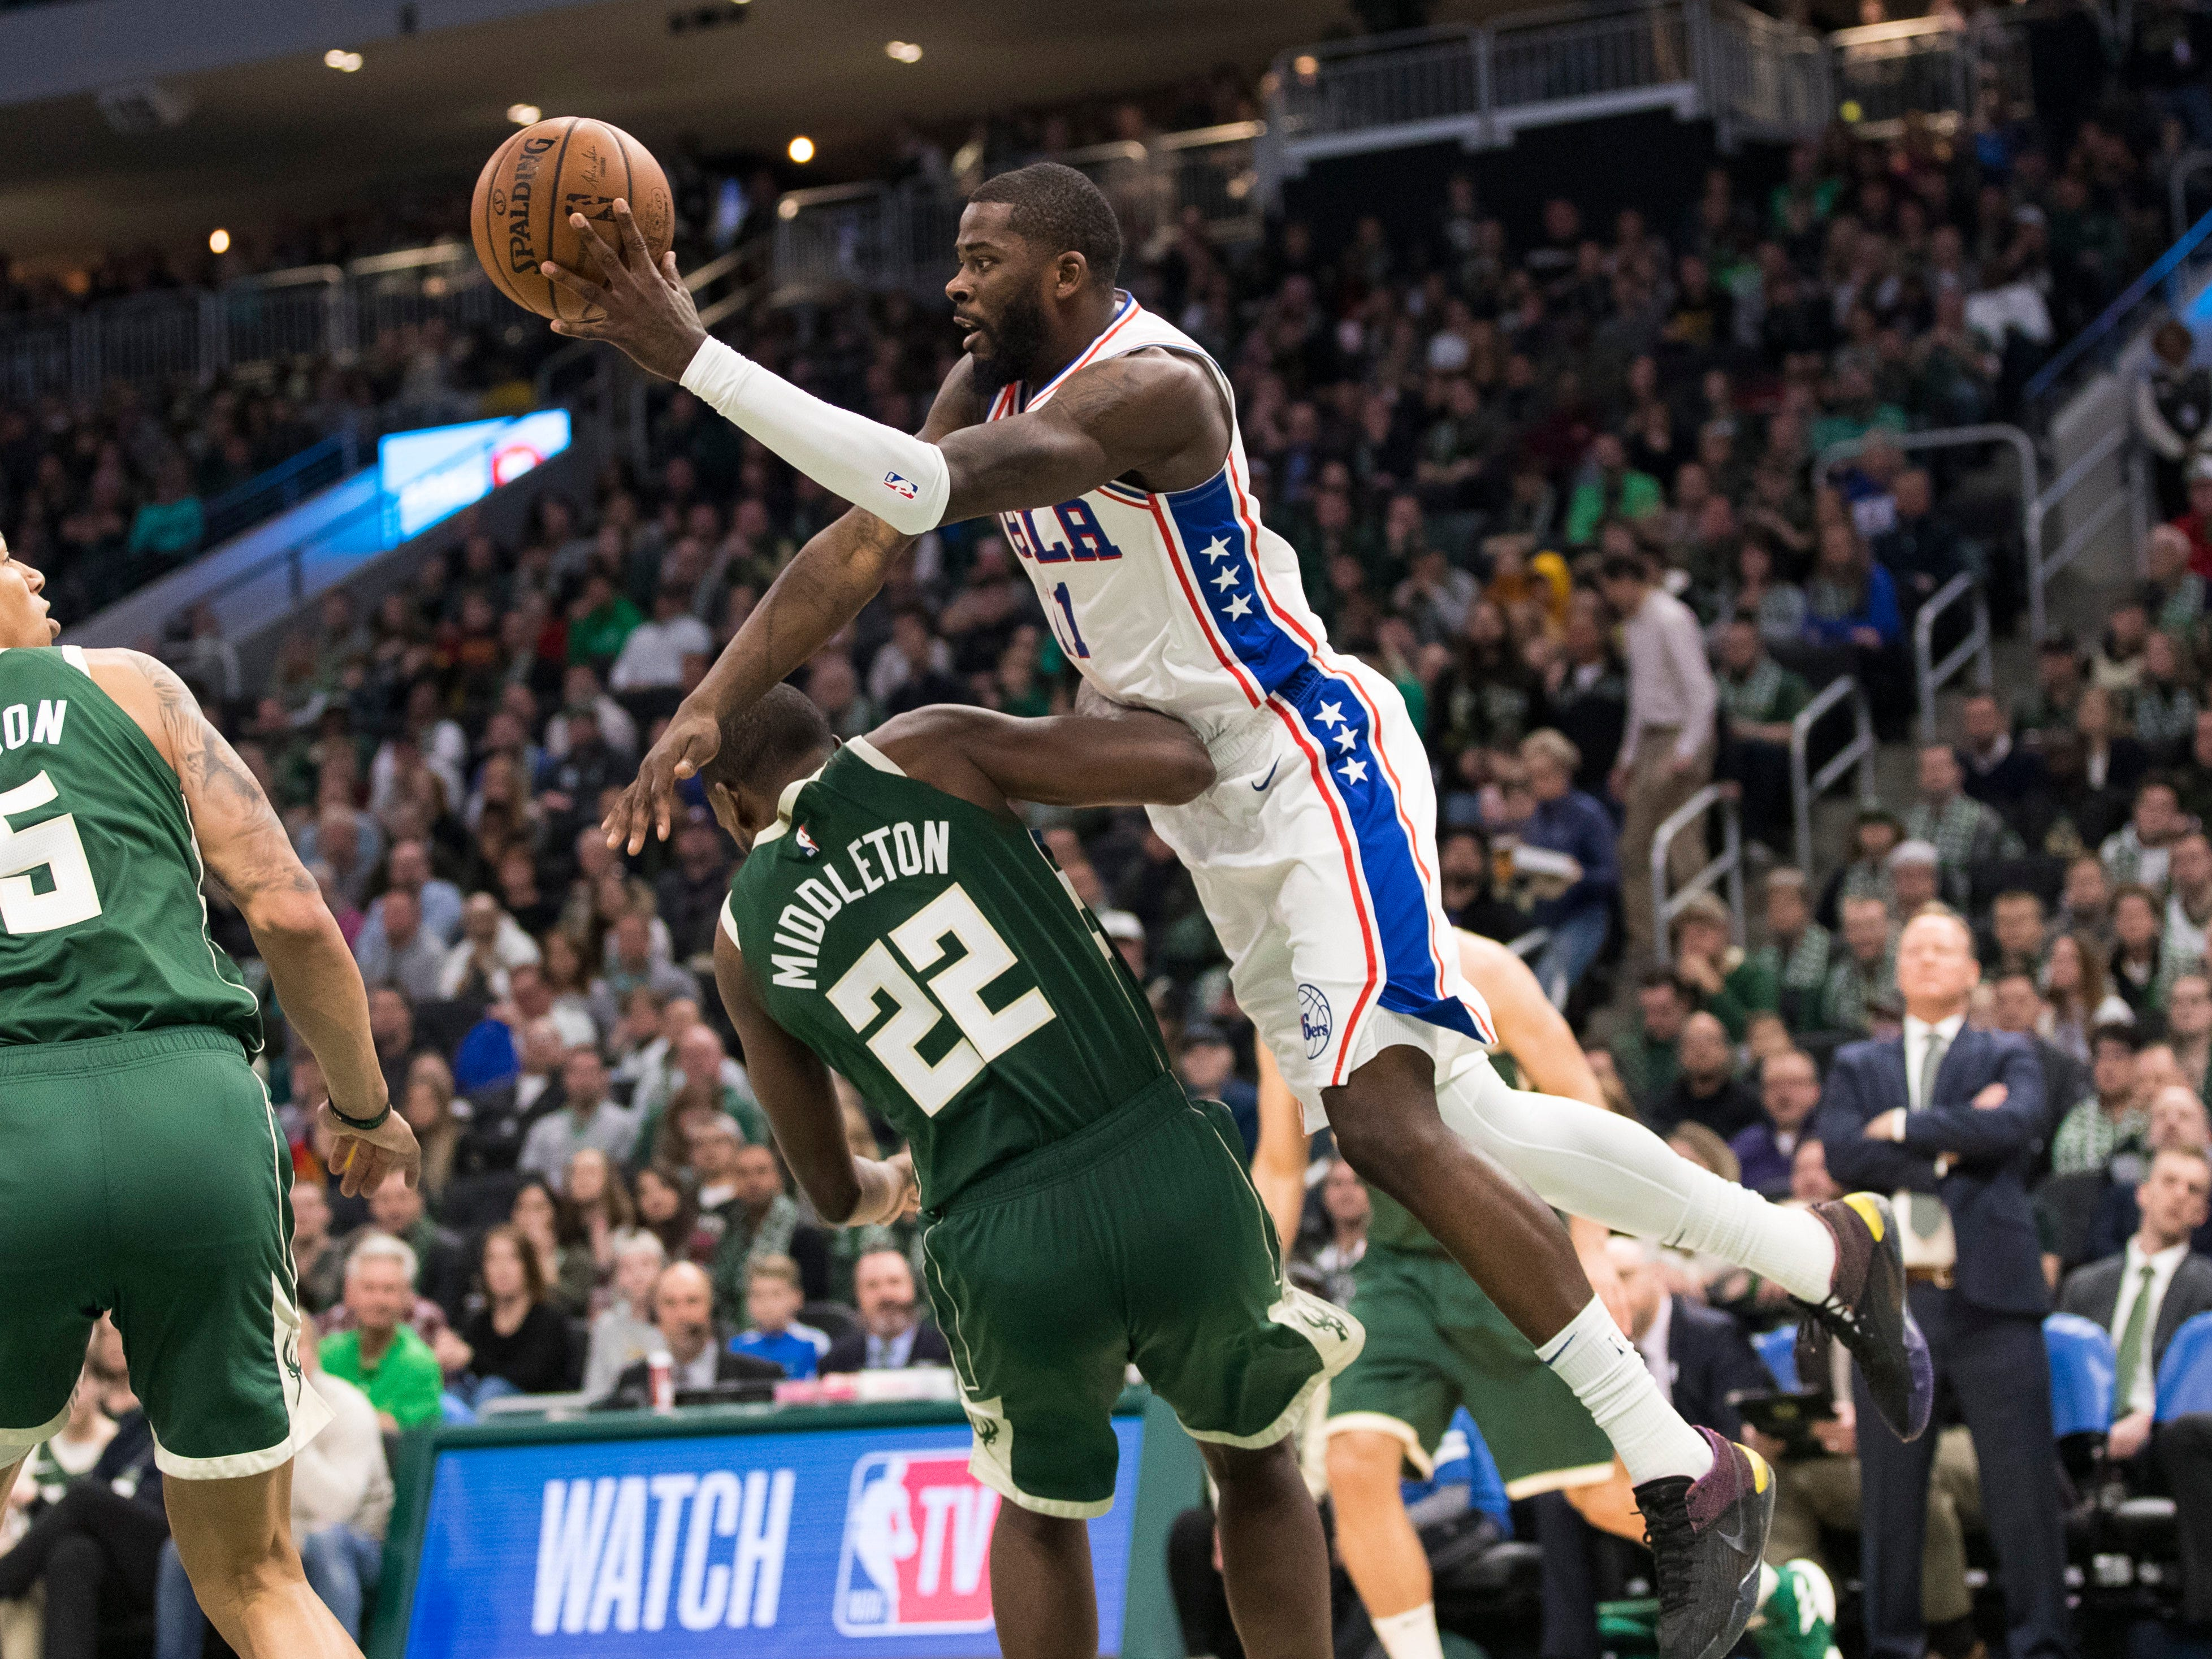 Bucks forward Khris Middleton draws an offense foul on James Ennis III of the Sixers during the fourth quarter.